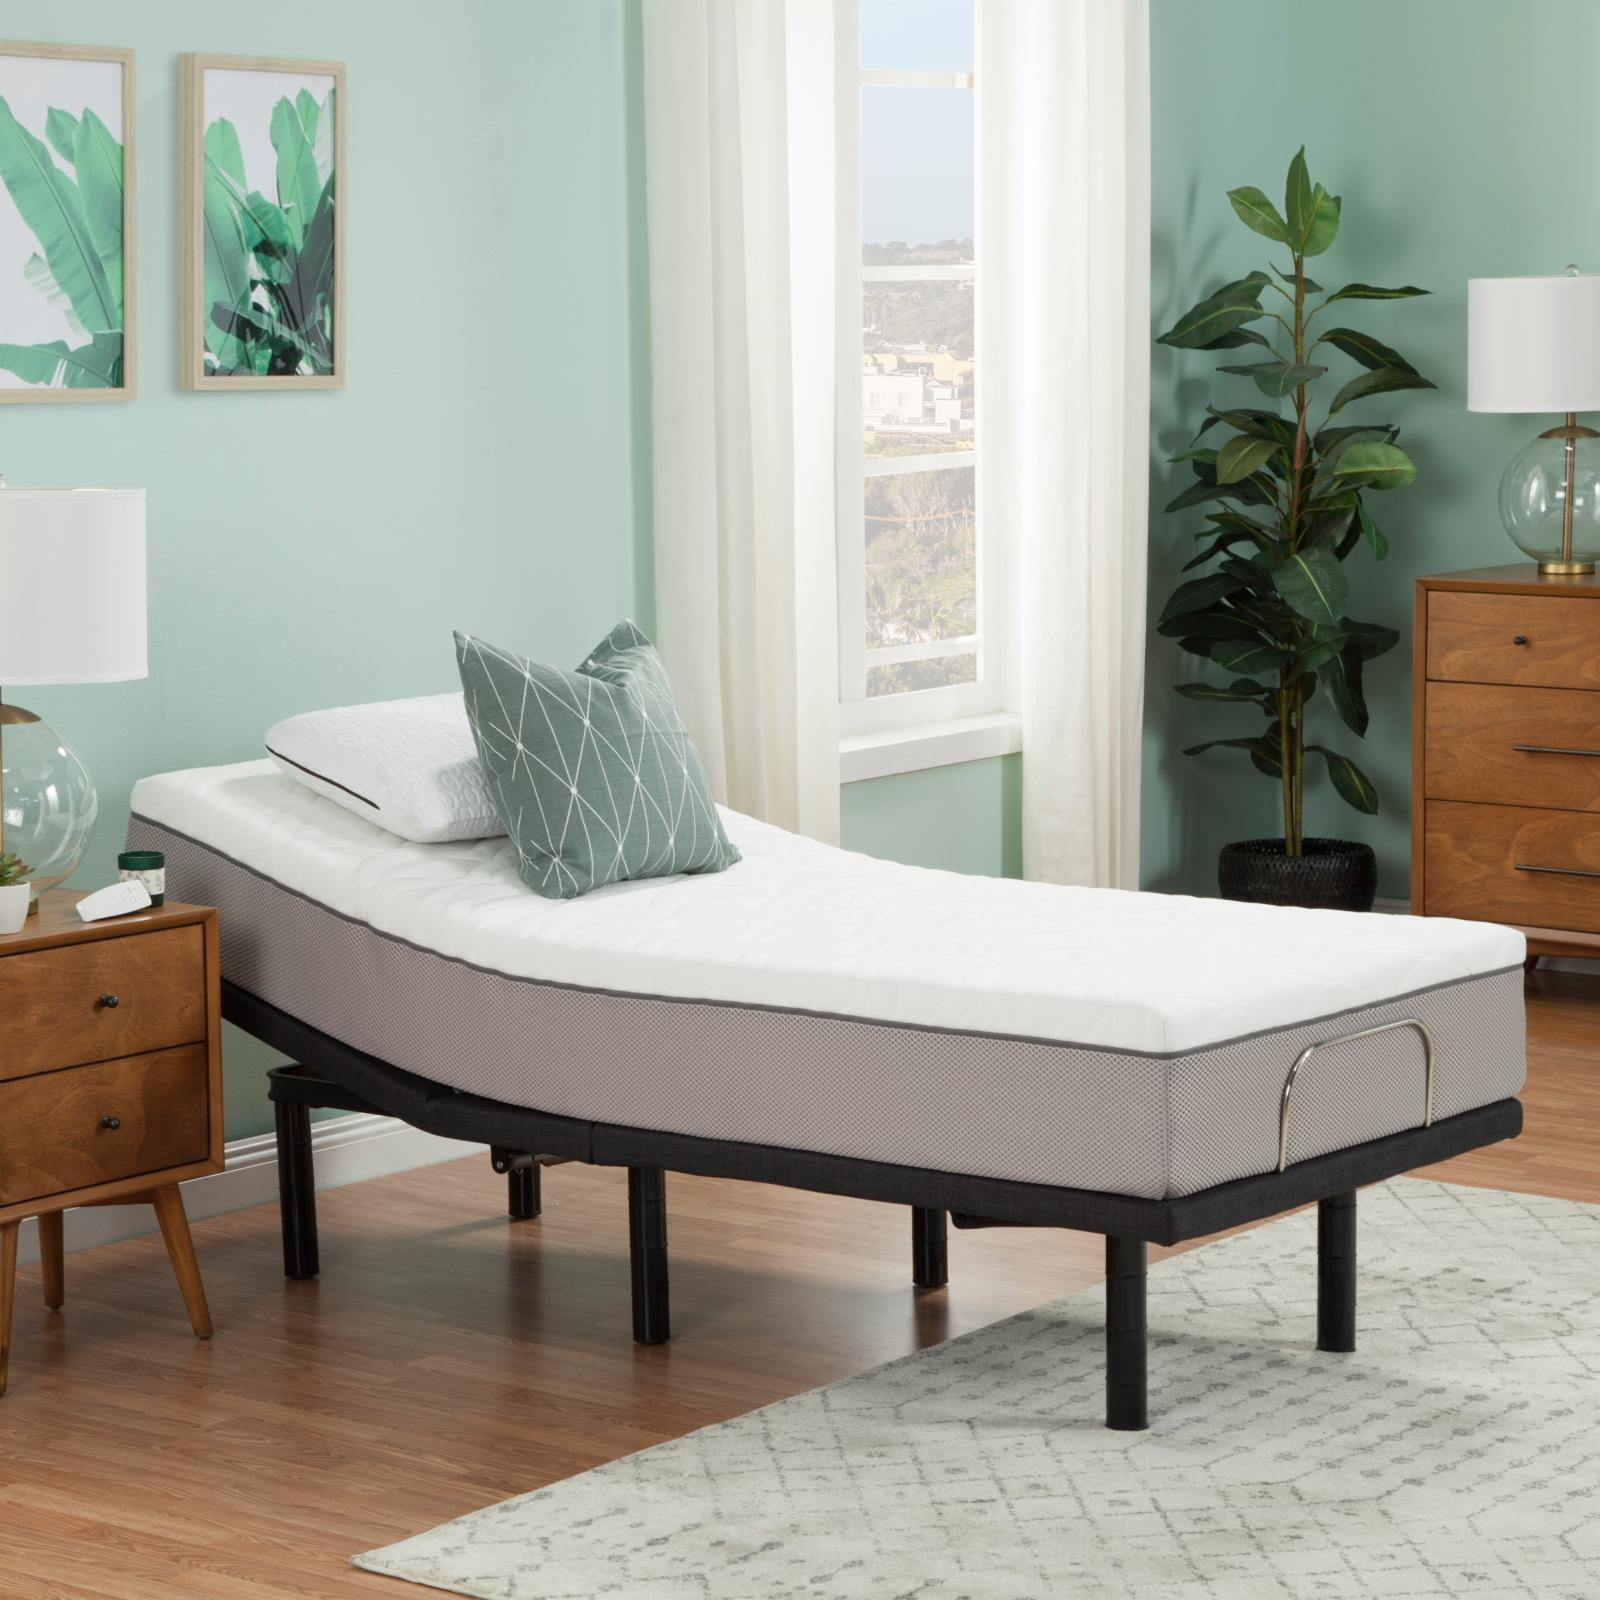 Blissful Nights 10 in. Latex Hybrid Mattress and Adjustable Base Set - 10BNLATEX/BNKD-TL